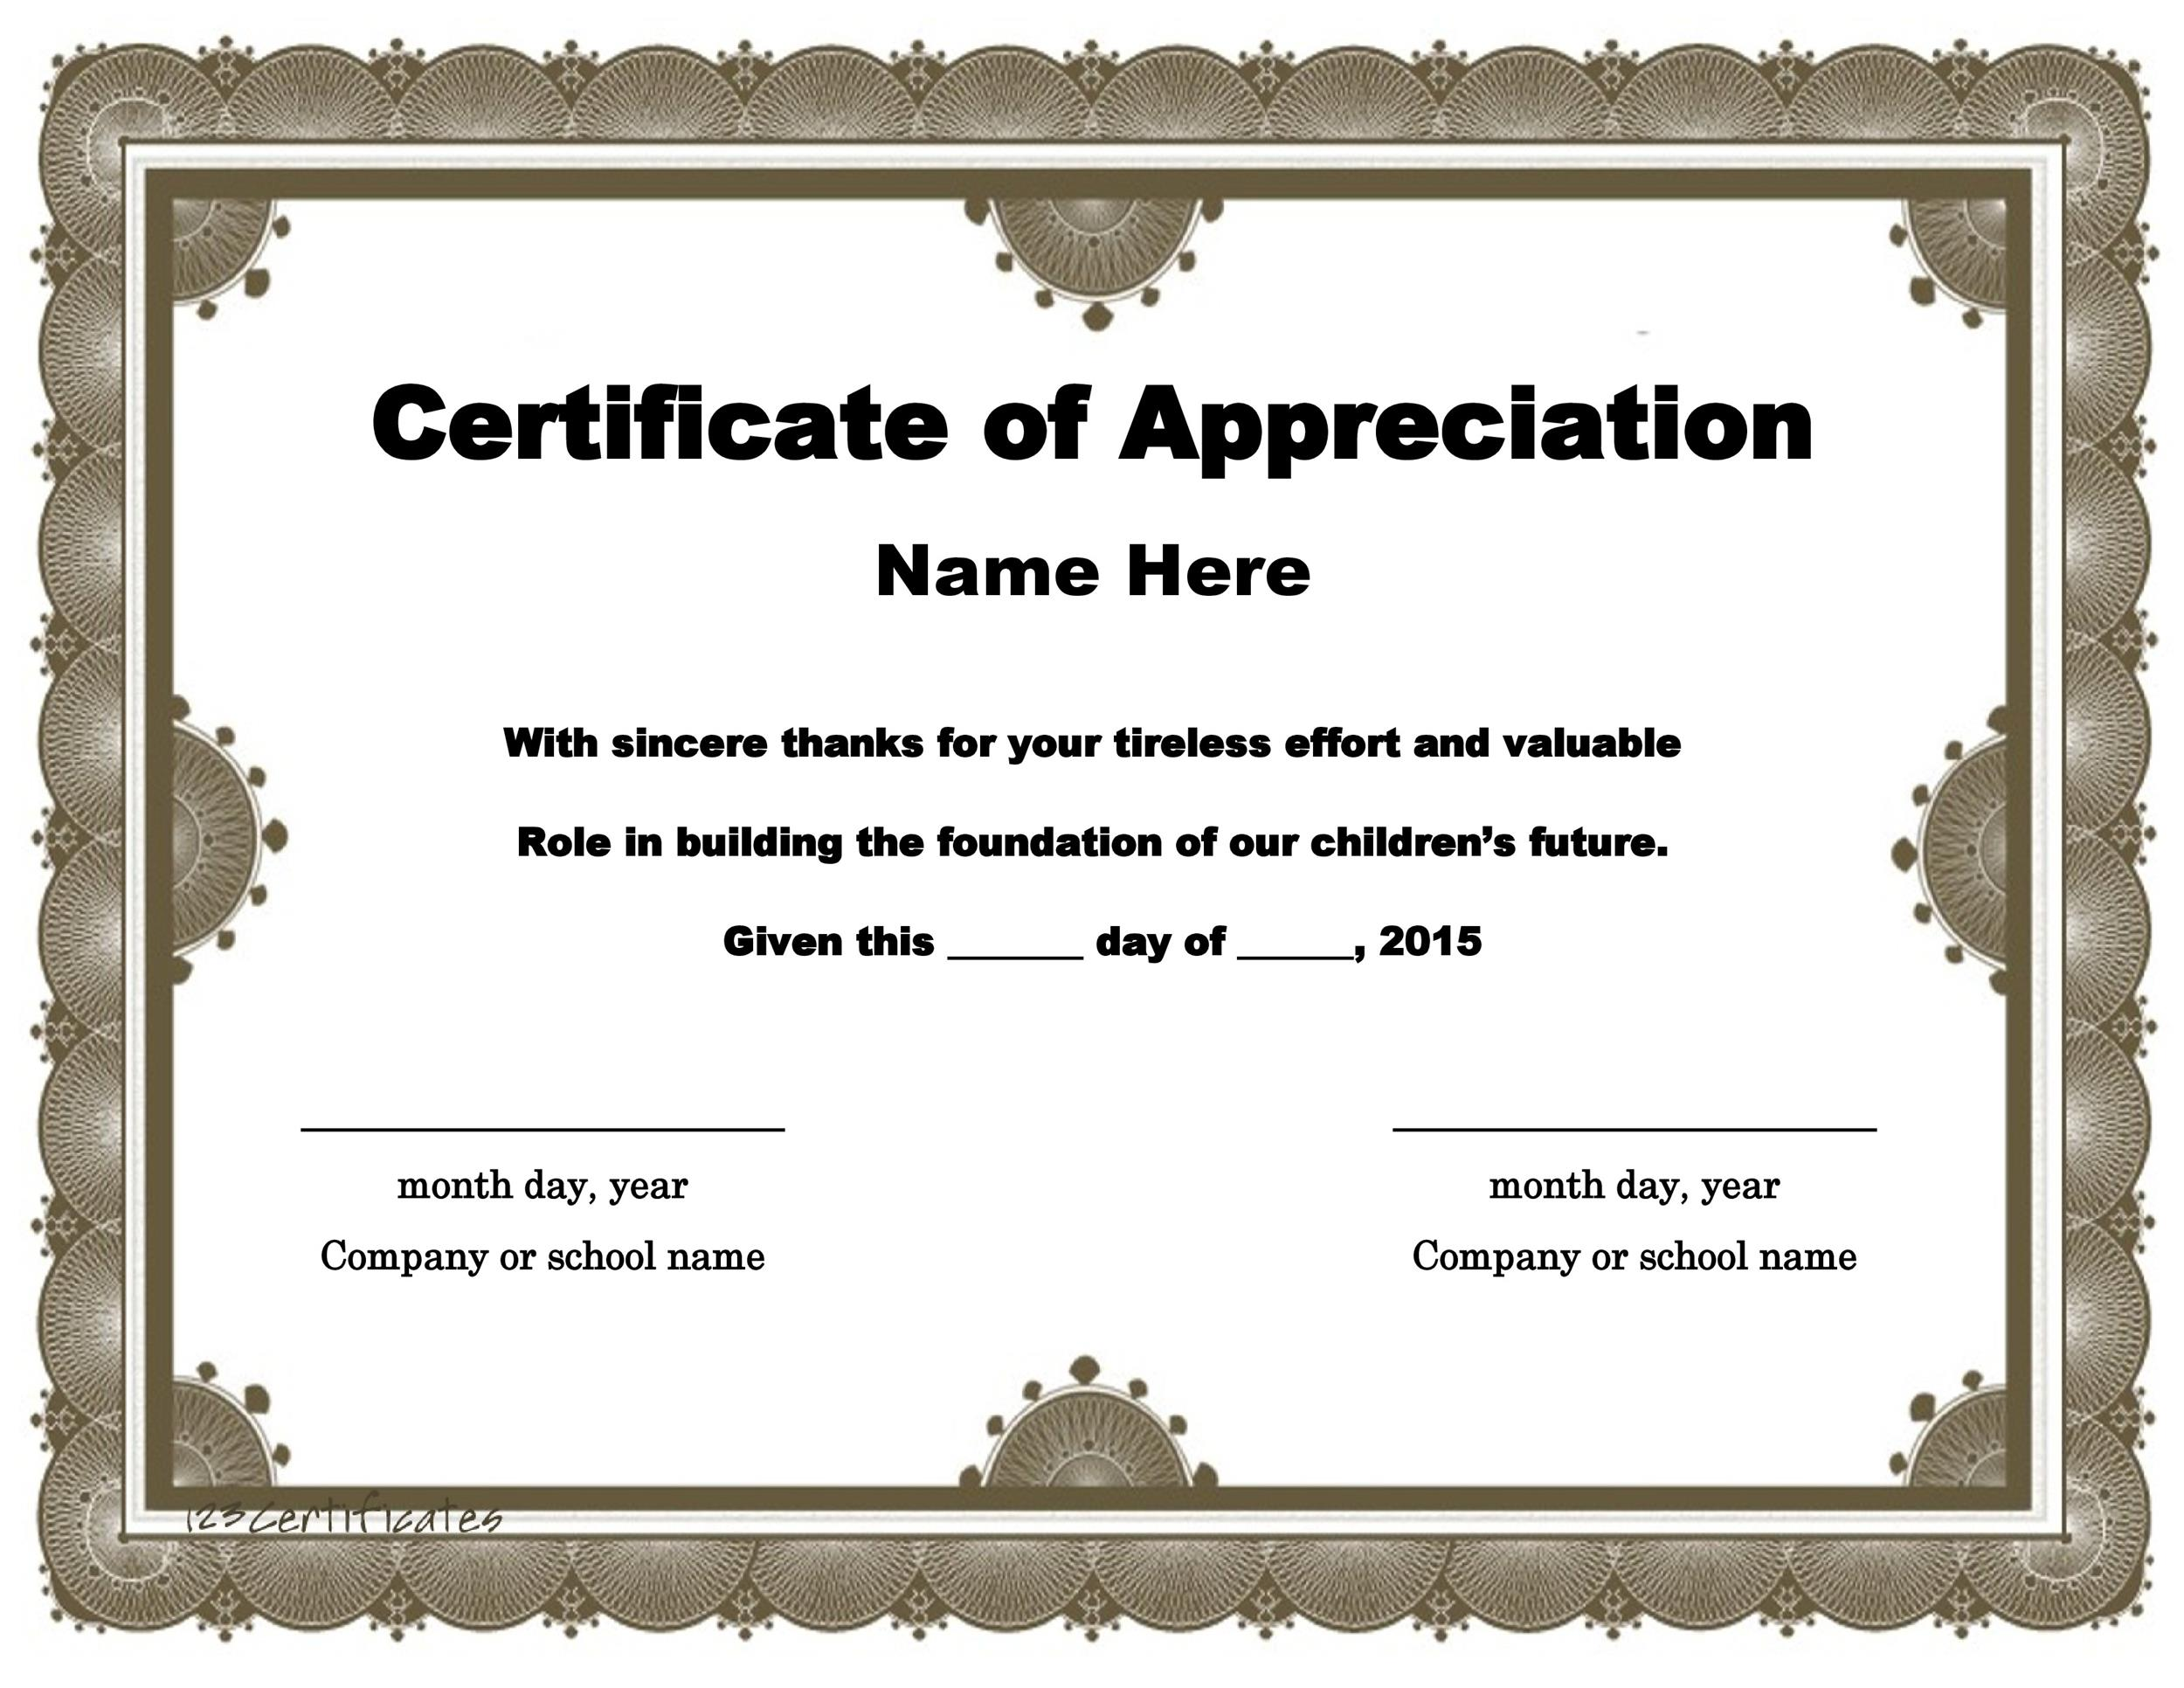 30 Free Certificate of Appreciation Templates and Letters – Blank Certificate Format